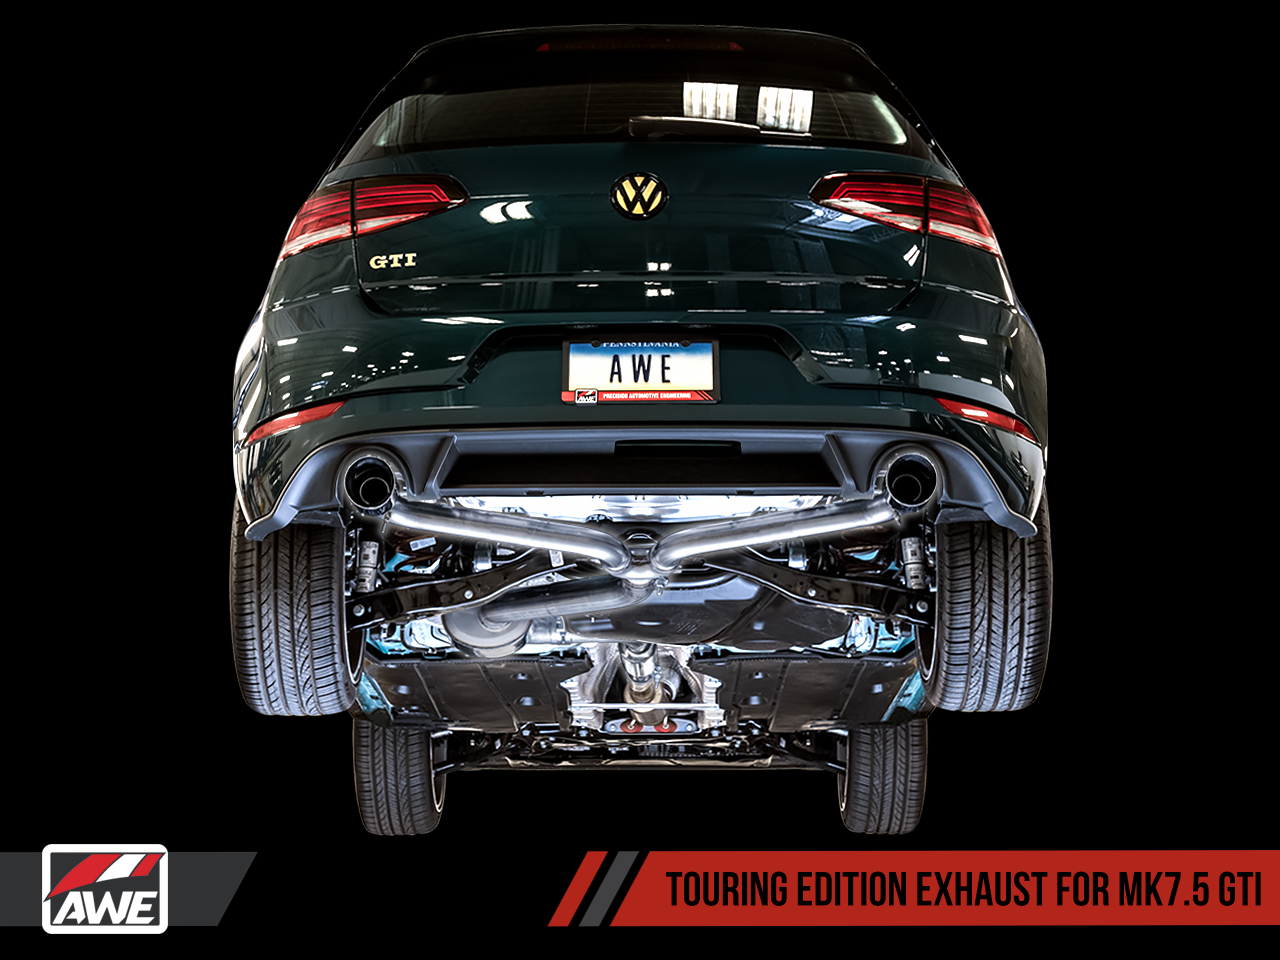 AWE Touring Edition Exhaust For VW MK7.5 GTI - Diamond Black Tips